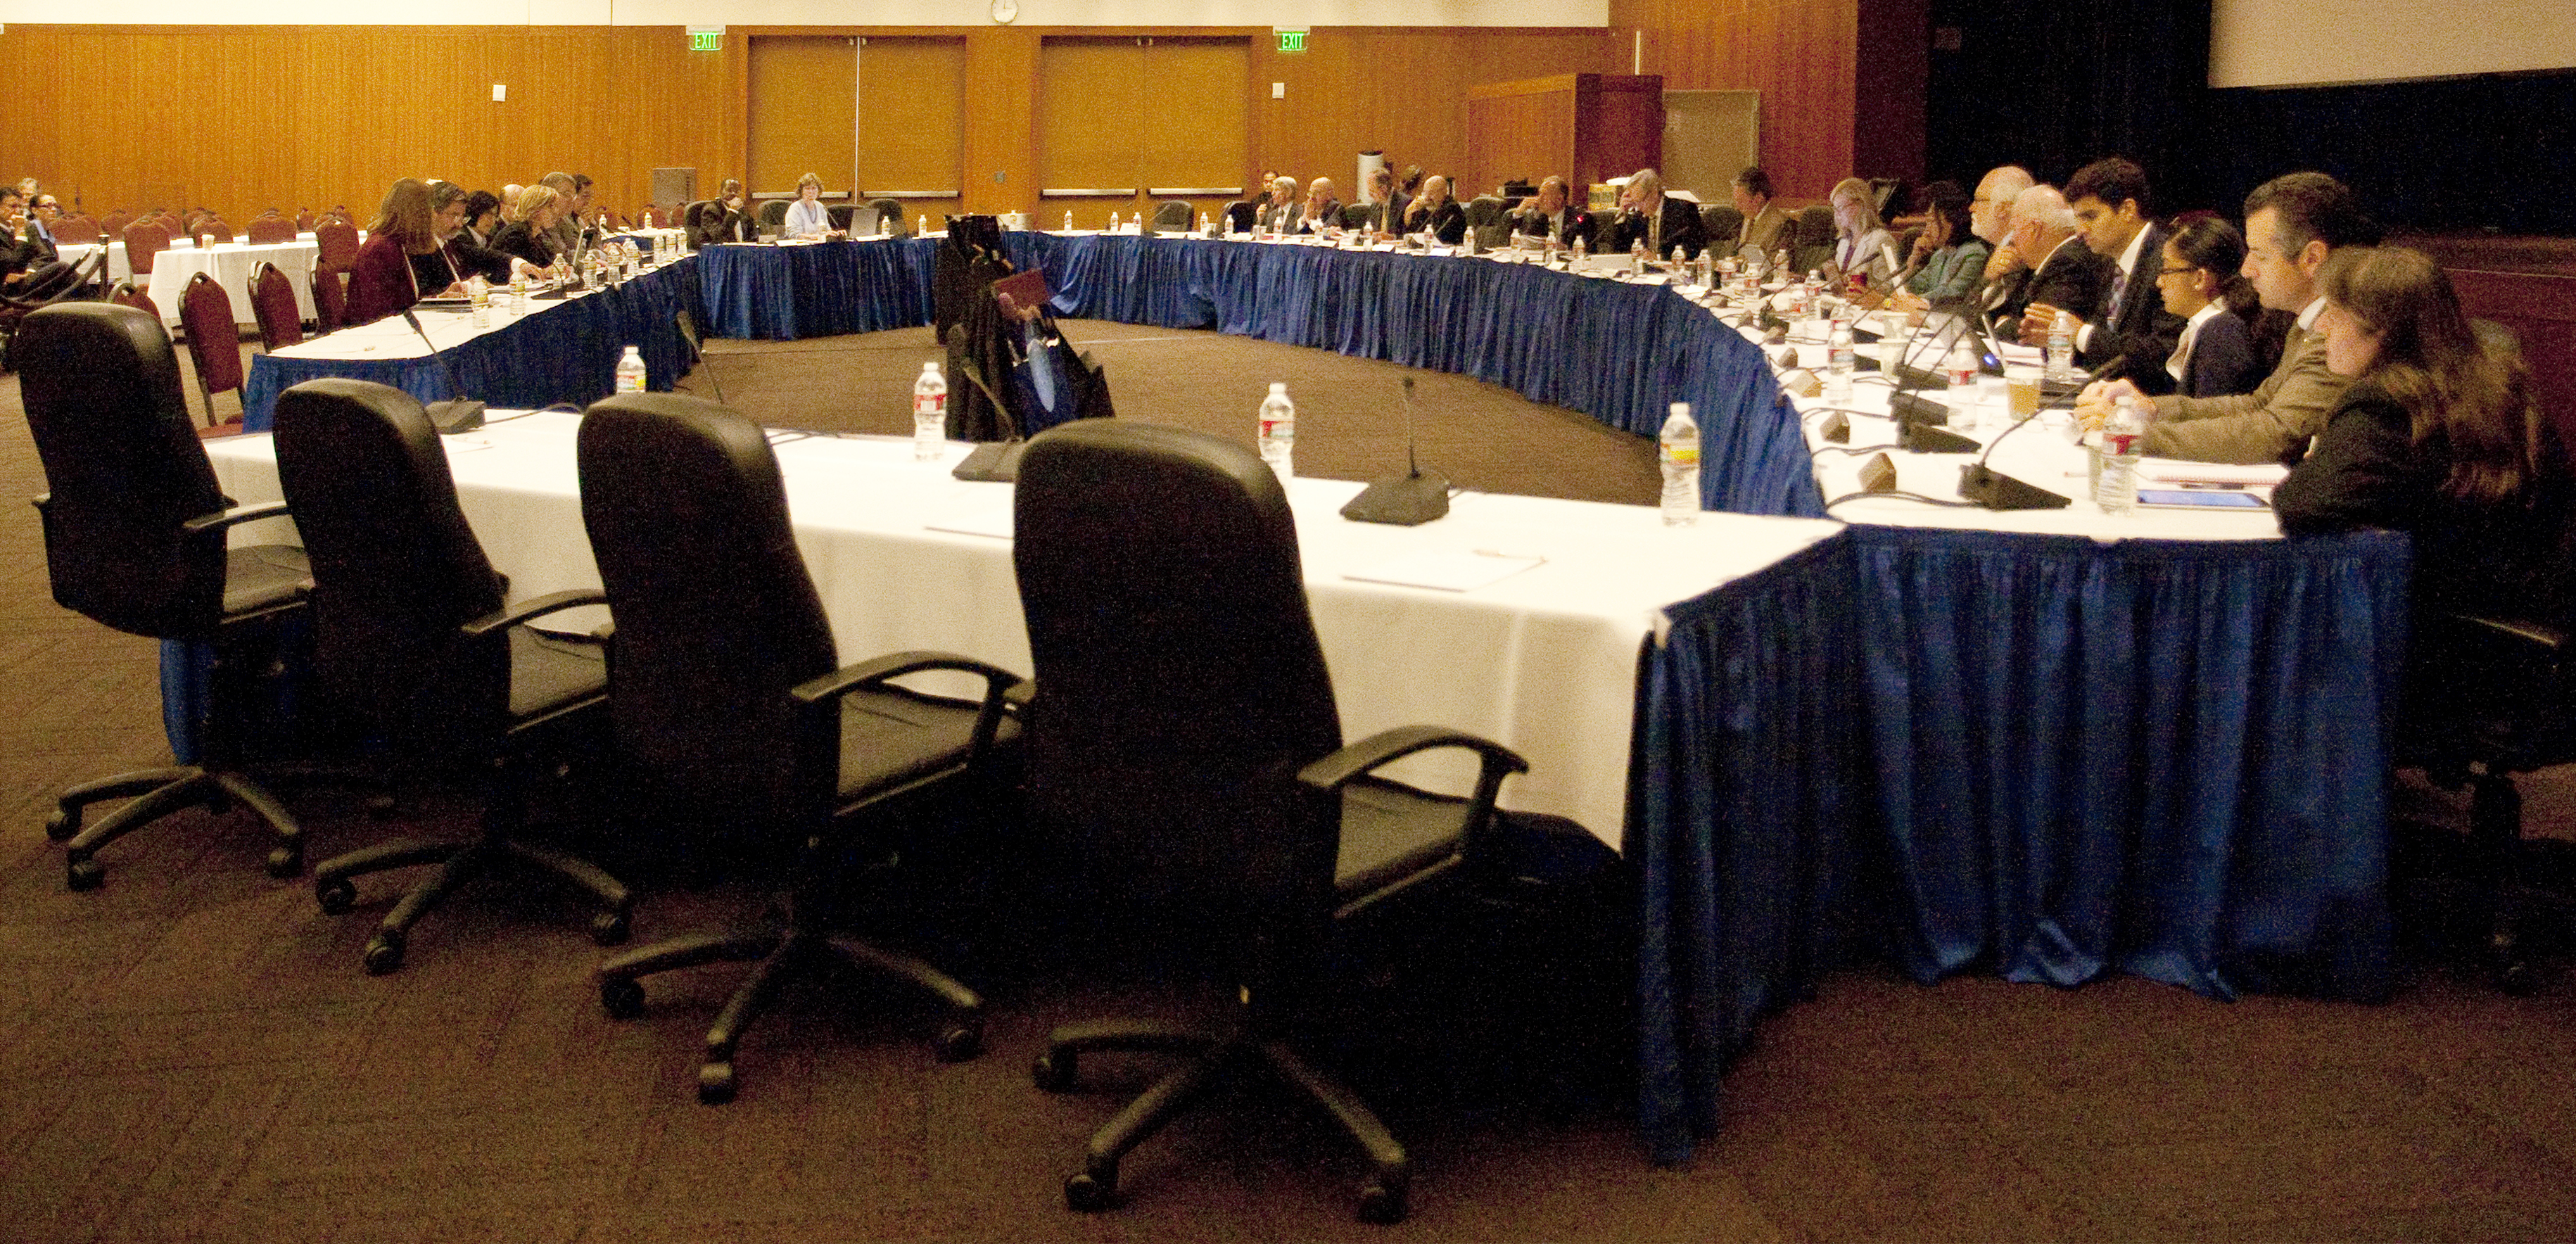 The UC regents discussed budget issues at their September meeting. On Wednesday, the committee on finance approved the 2013-14 budget.